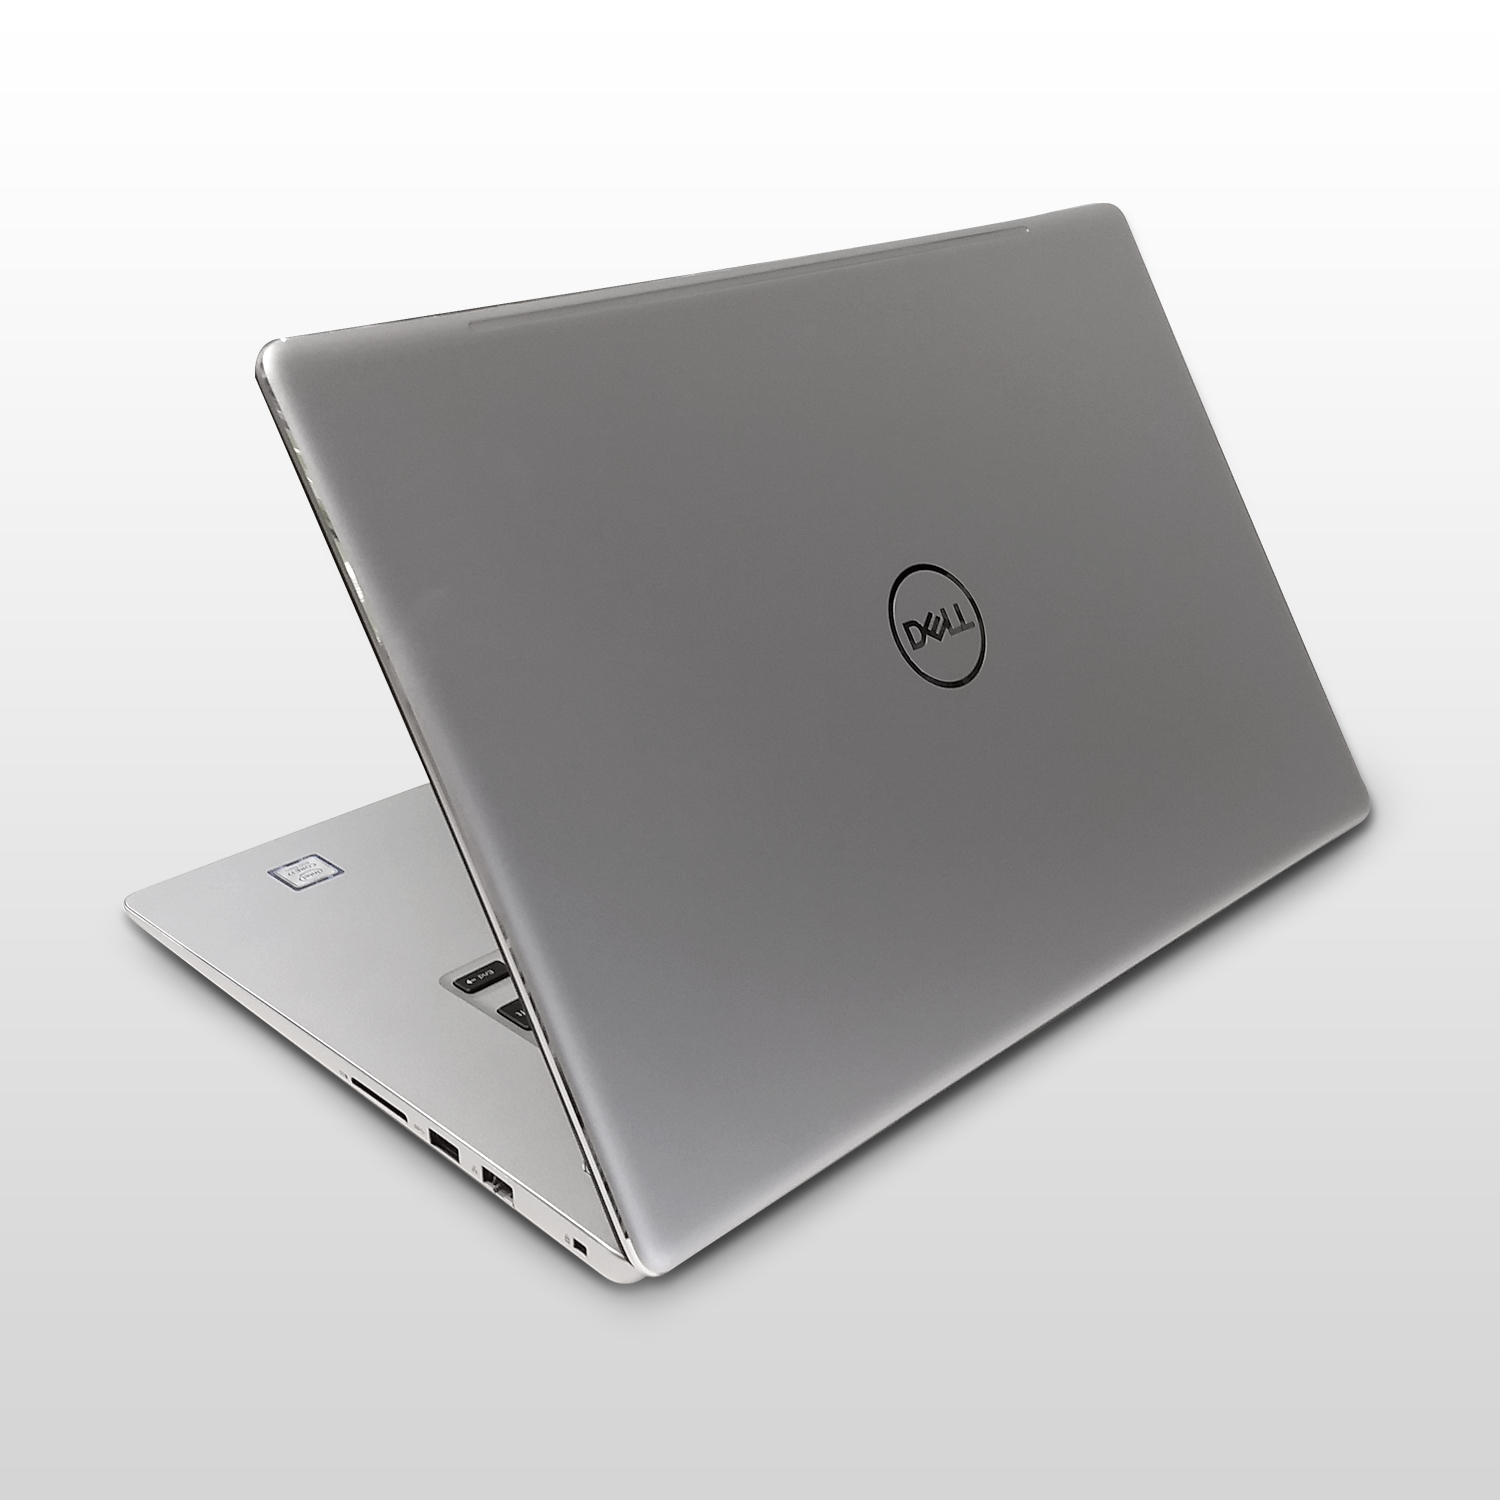 DELL I7570-7817SLV-PUS 16gb